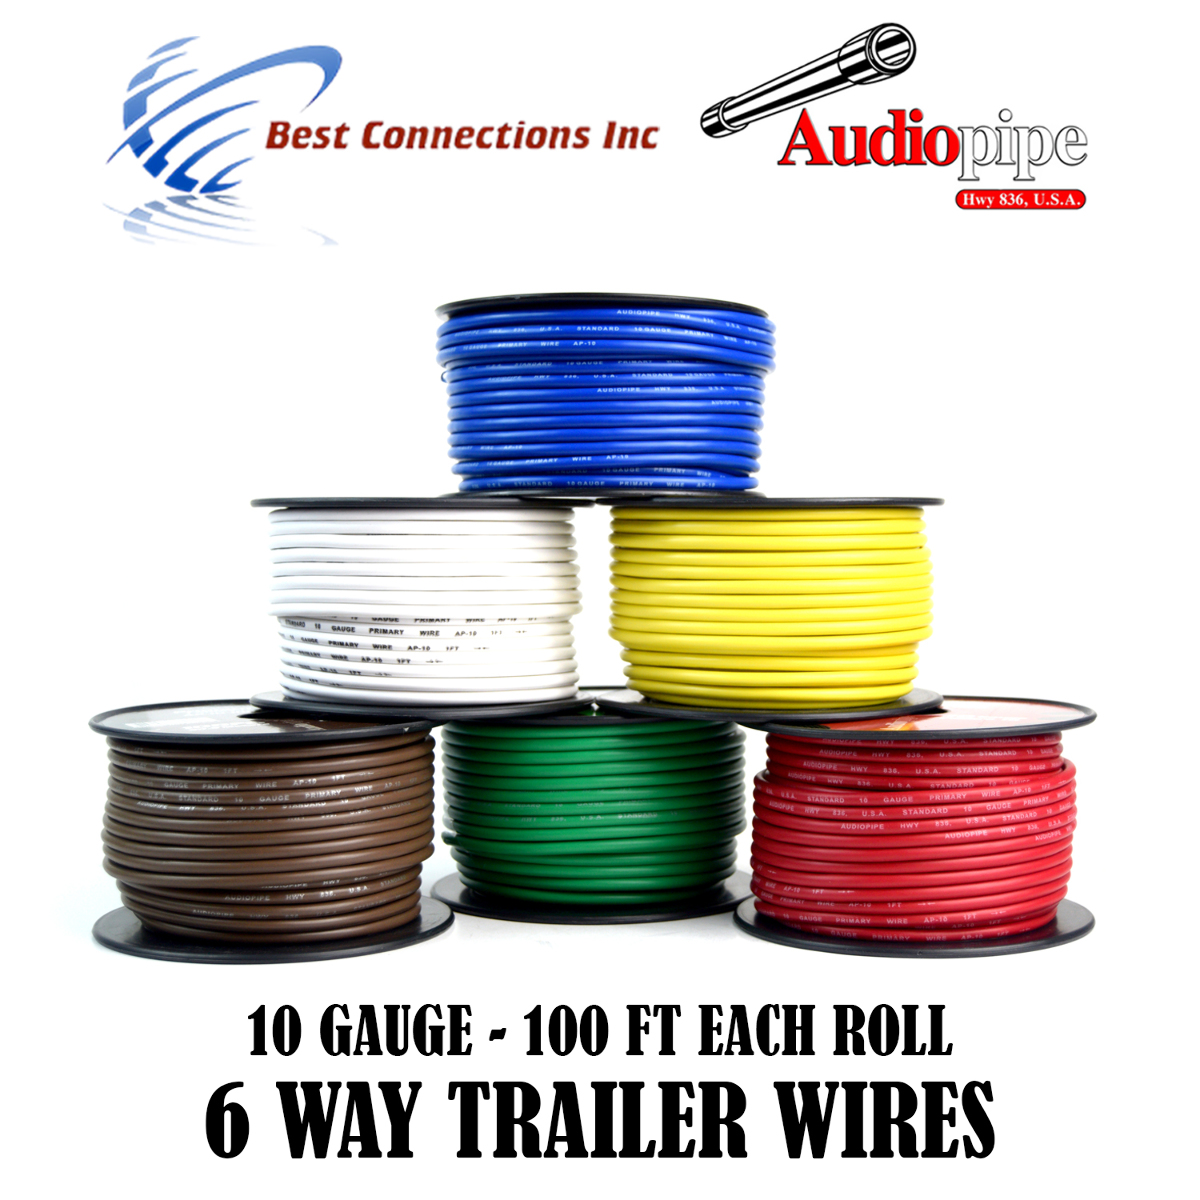 6 Way Trailer Wiring Harness Detailed Schematics Diagram Escapade Wire Light Cable For Led 100ft Each Roll 10 7 Pin Brake